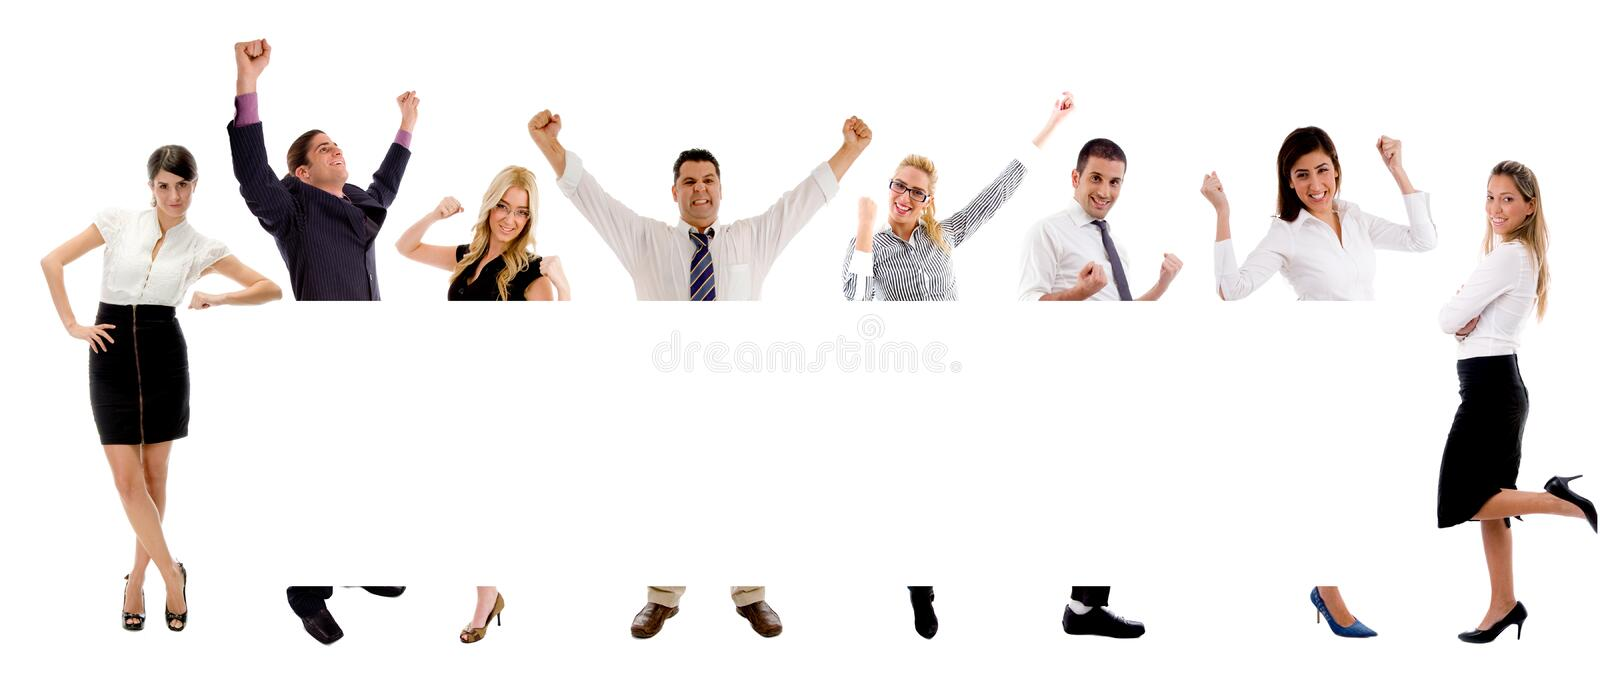 Download People with banner stock image. Image of hispanic, look - 8564033